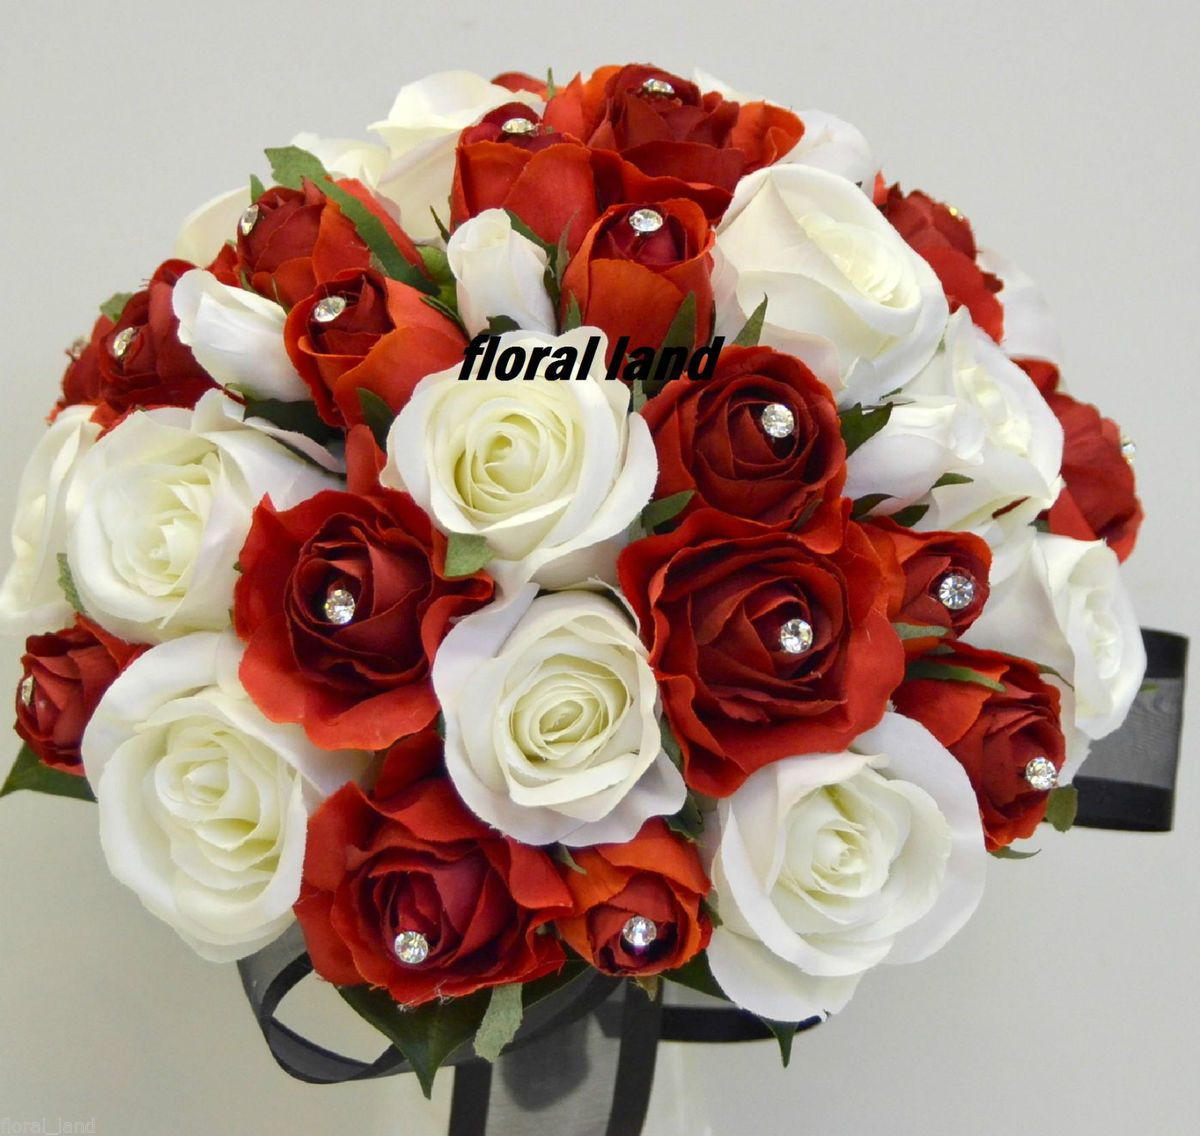 Bouquet of fake flowers in red silk flower wedding bouquet red bouquet of fake flowers in red silk flower wedding bouquet red white rose diamontie posy bridal izmirmasajfo